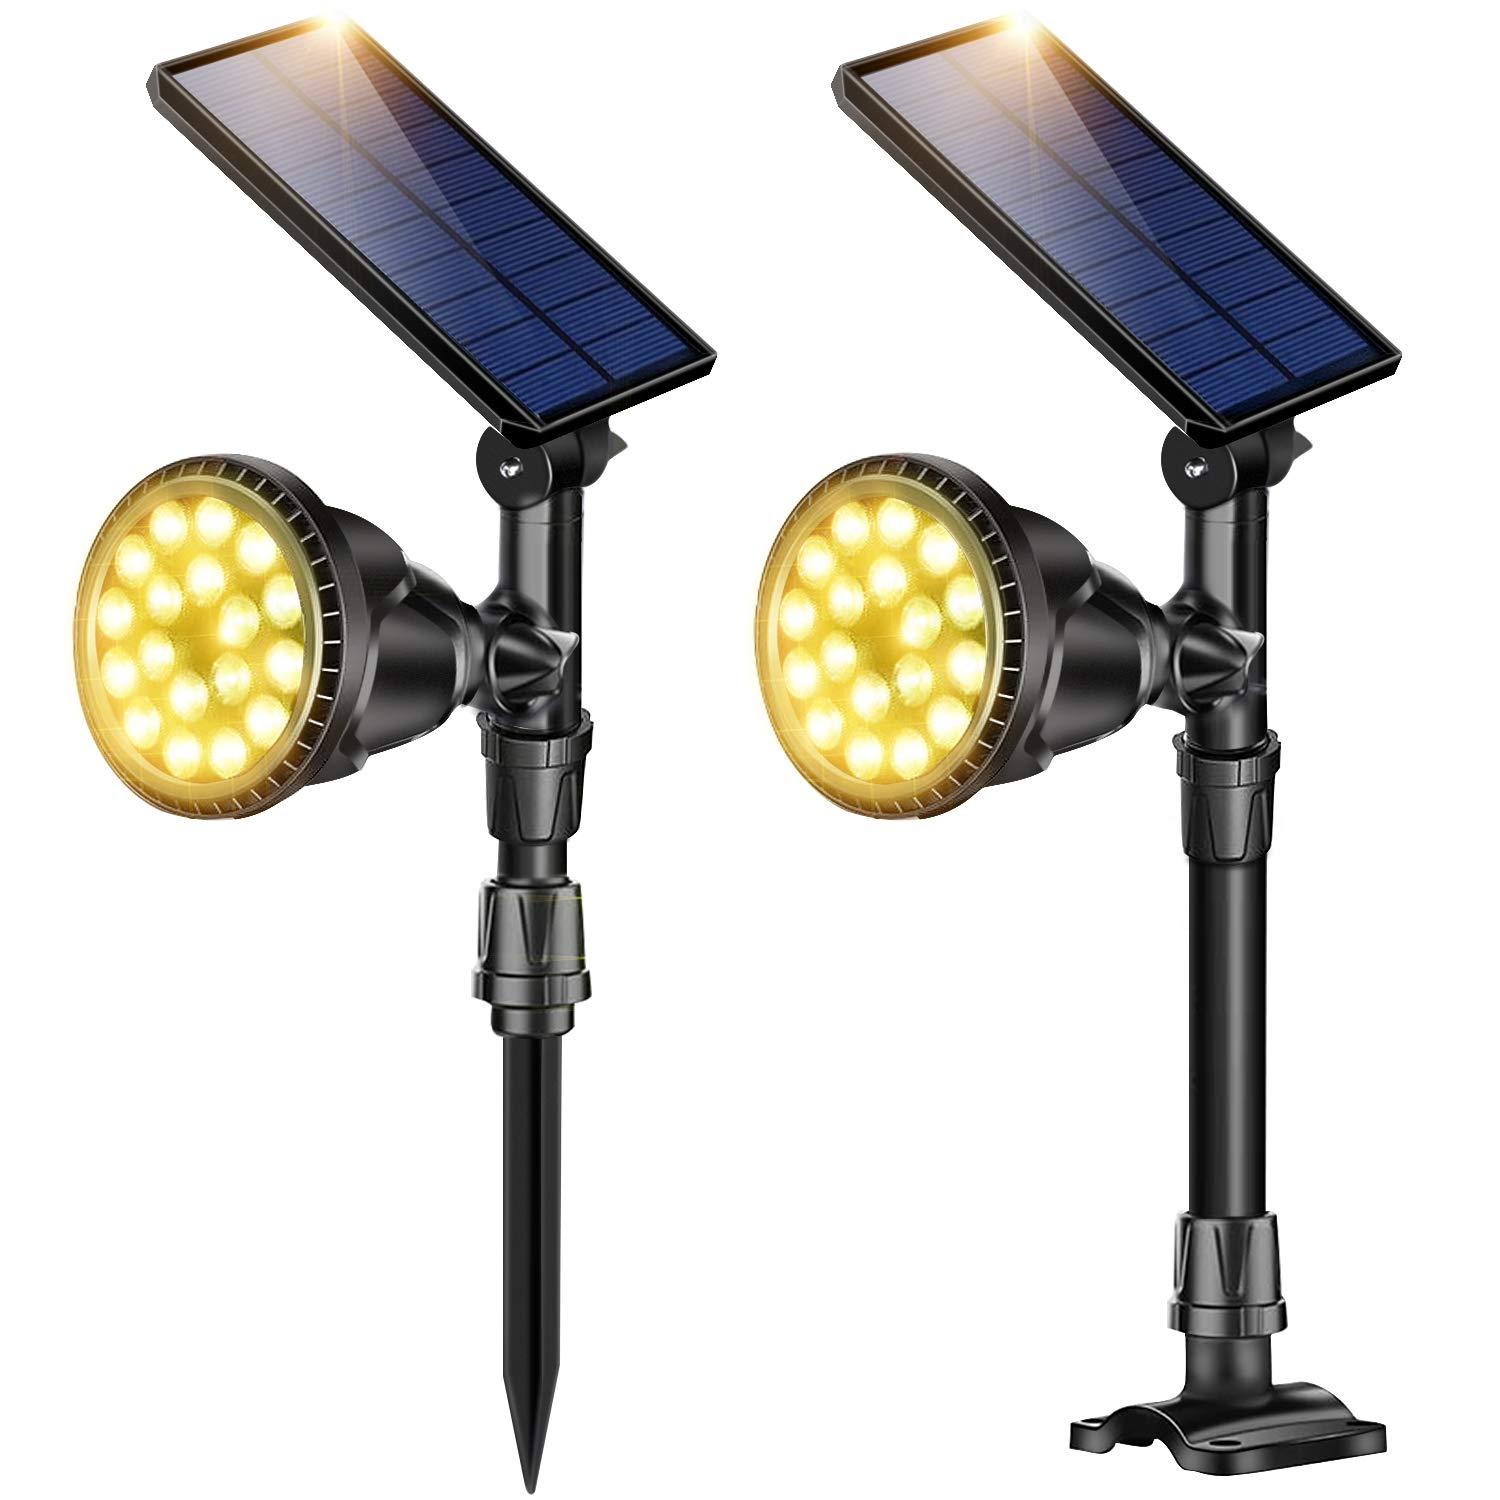 DS Lighting Outdoor Solar Spotlights, Super Bright 18 LED Security Light Waterproof Wall Lamps for Garden Landscape Patio Porch Deck Garage (Warm White, 2 Pack)